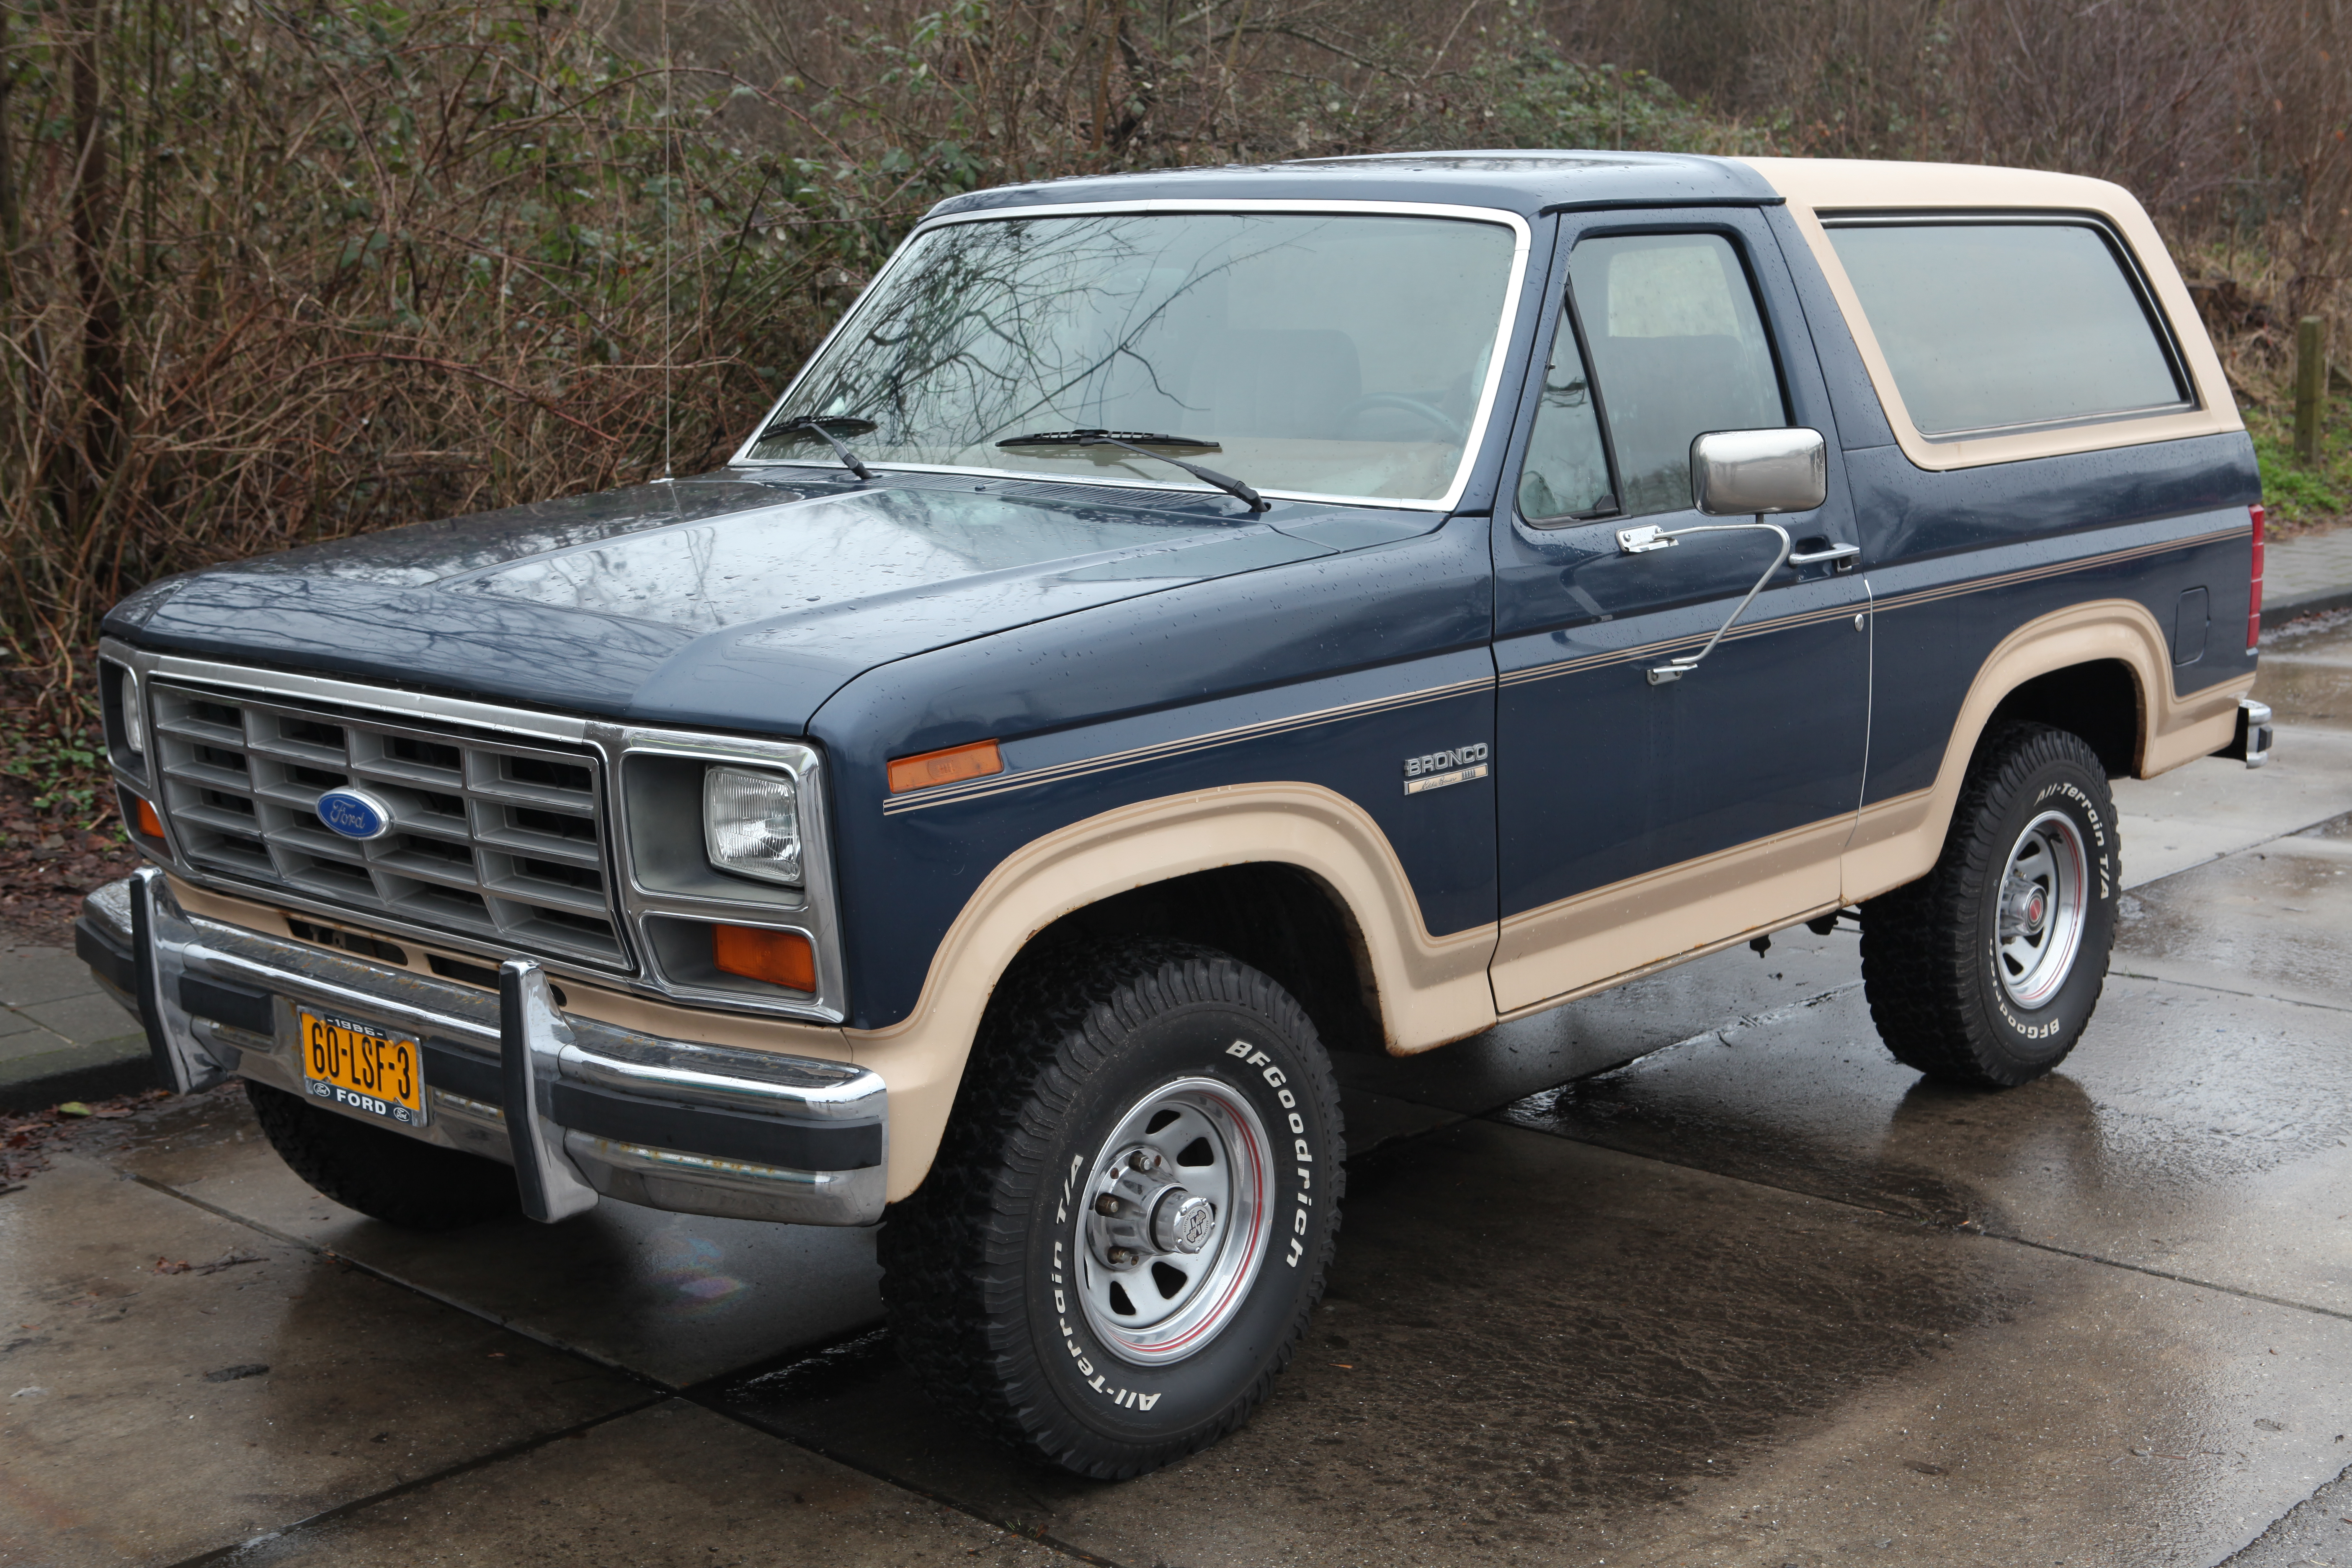 Ford Bronco #1